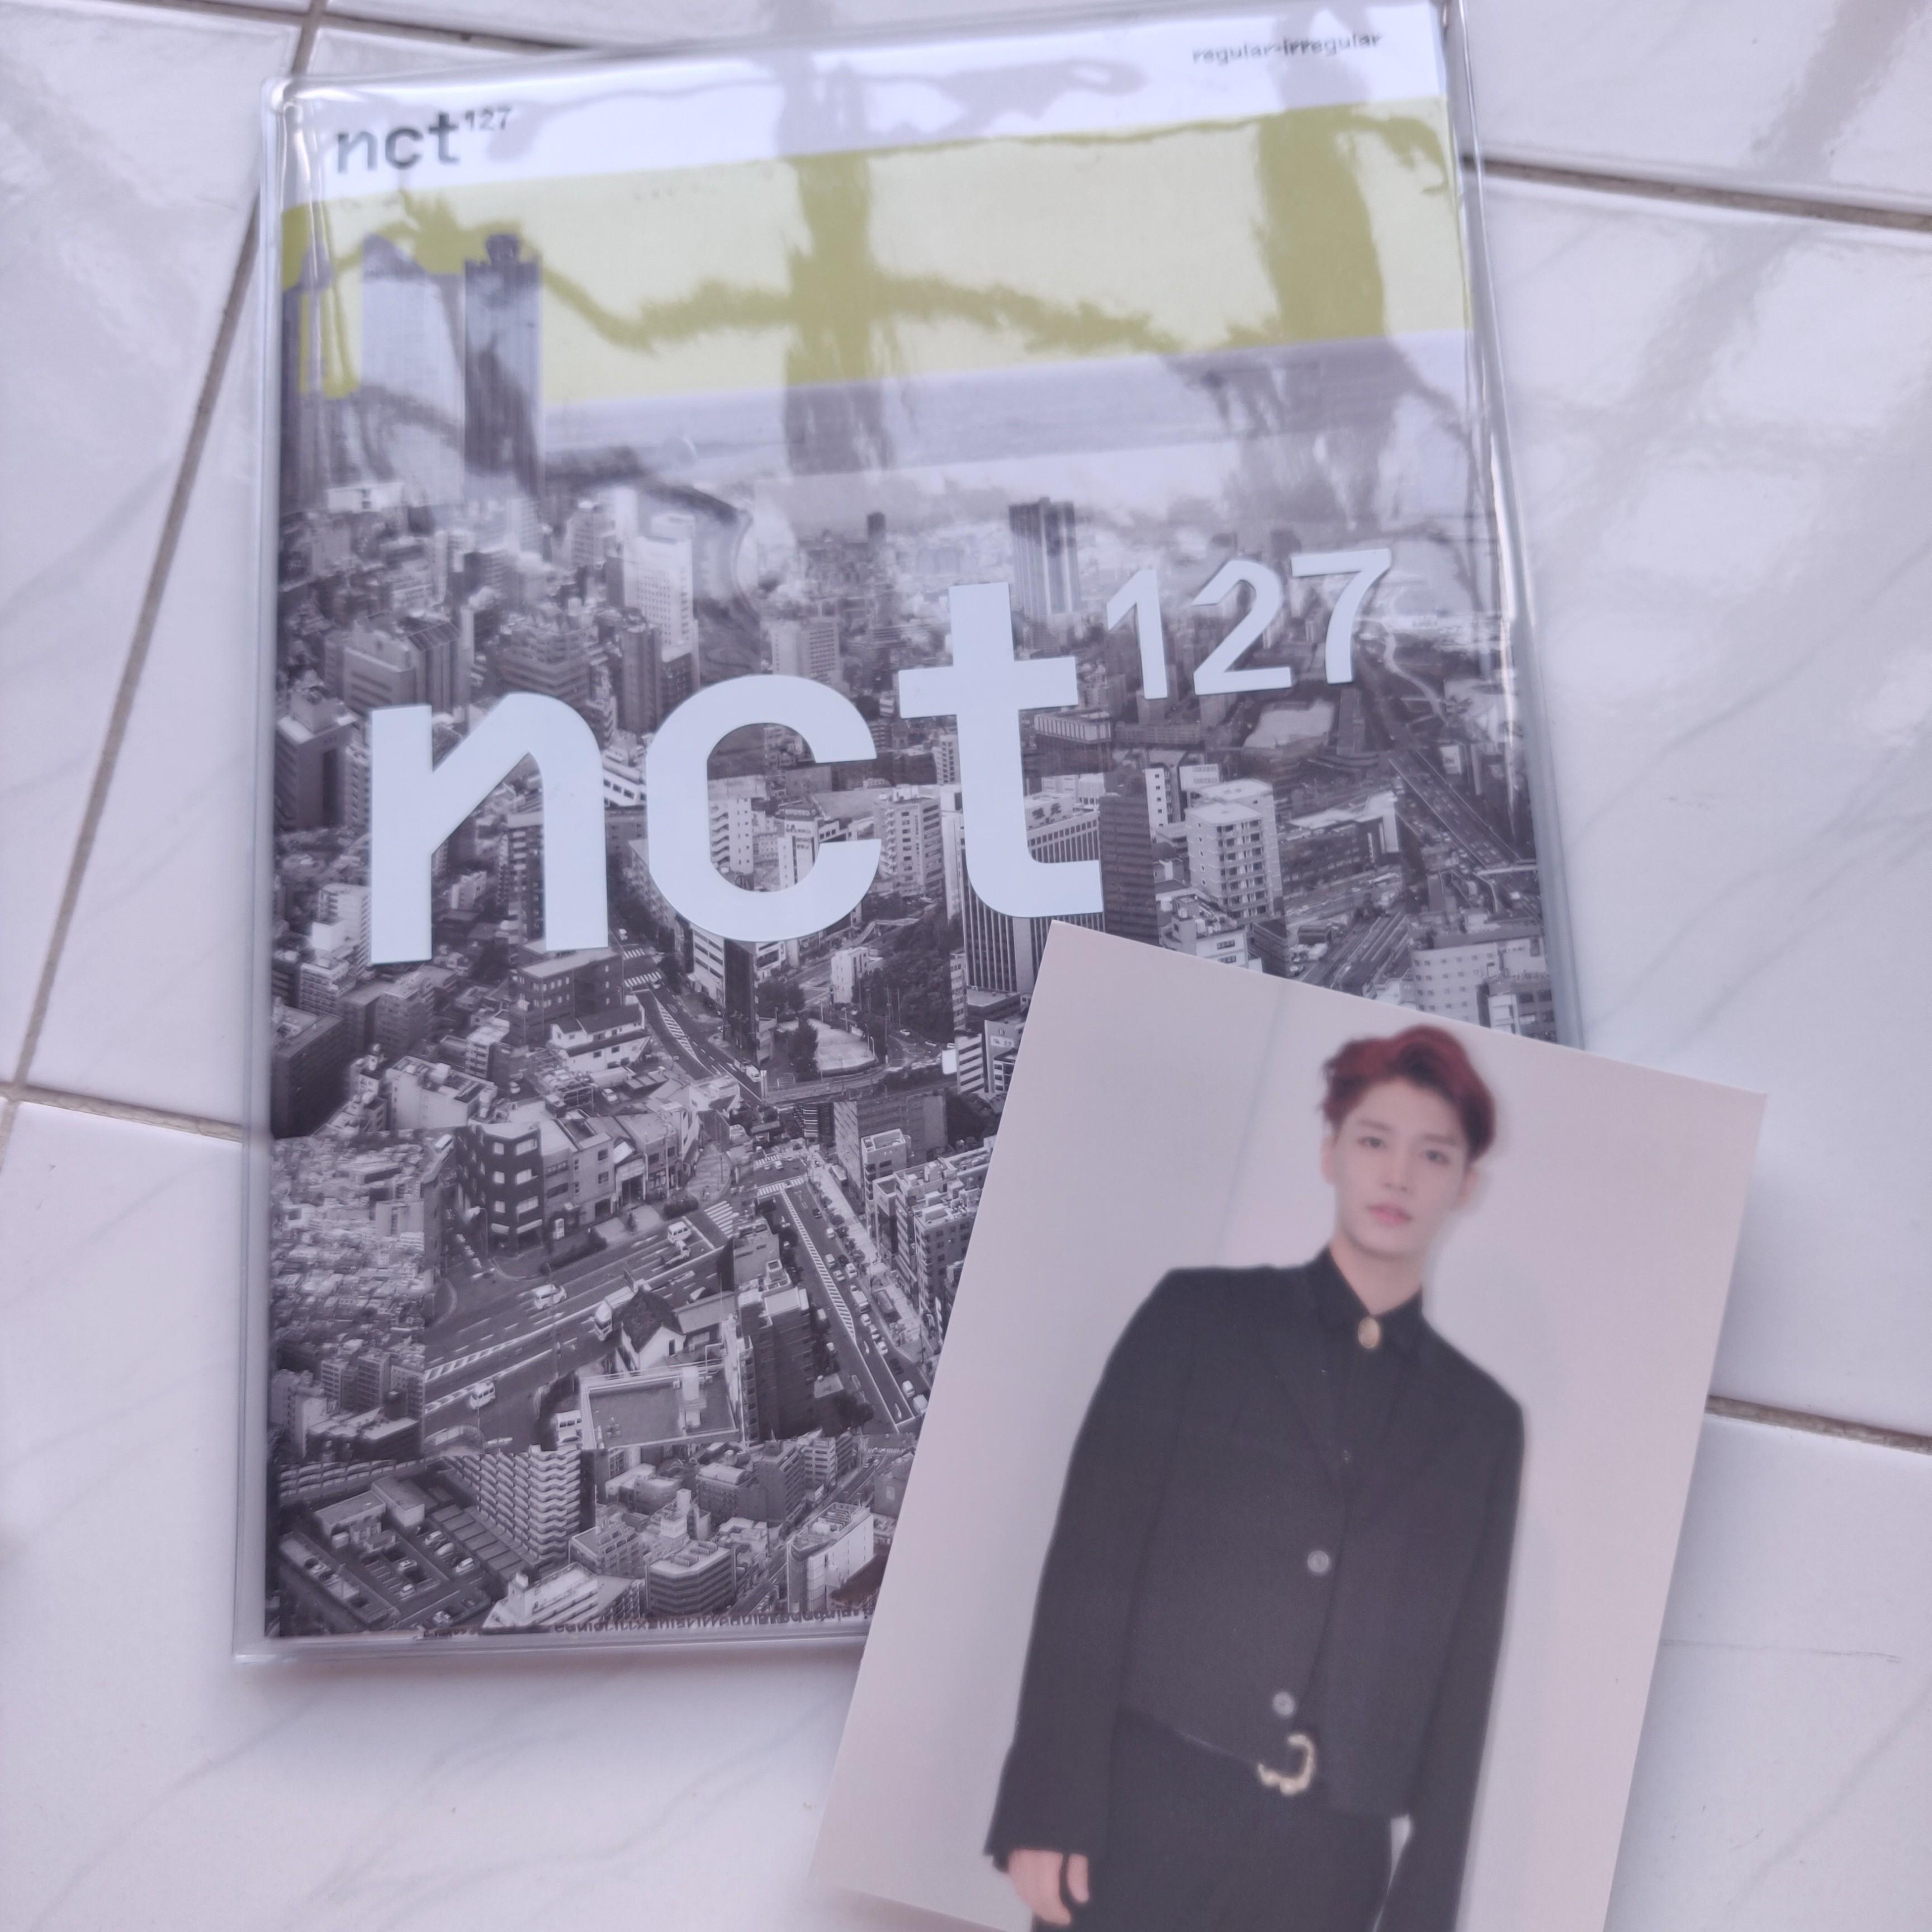 [PRICE REDUCED!] NCT 127 1st ALBUM REGULAR-IRREGULAR REGULAR VERSION